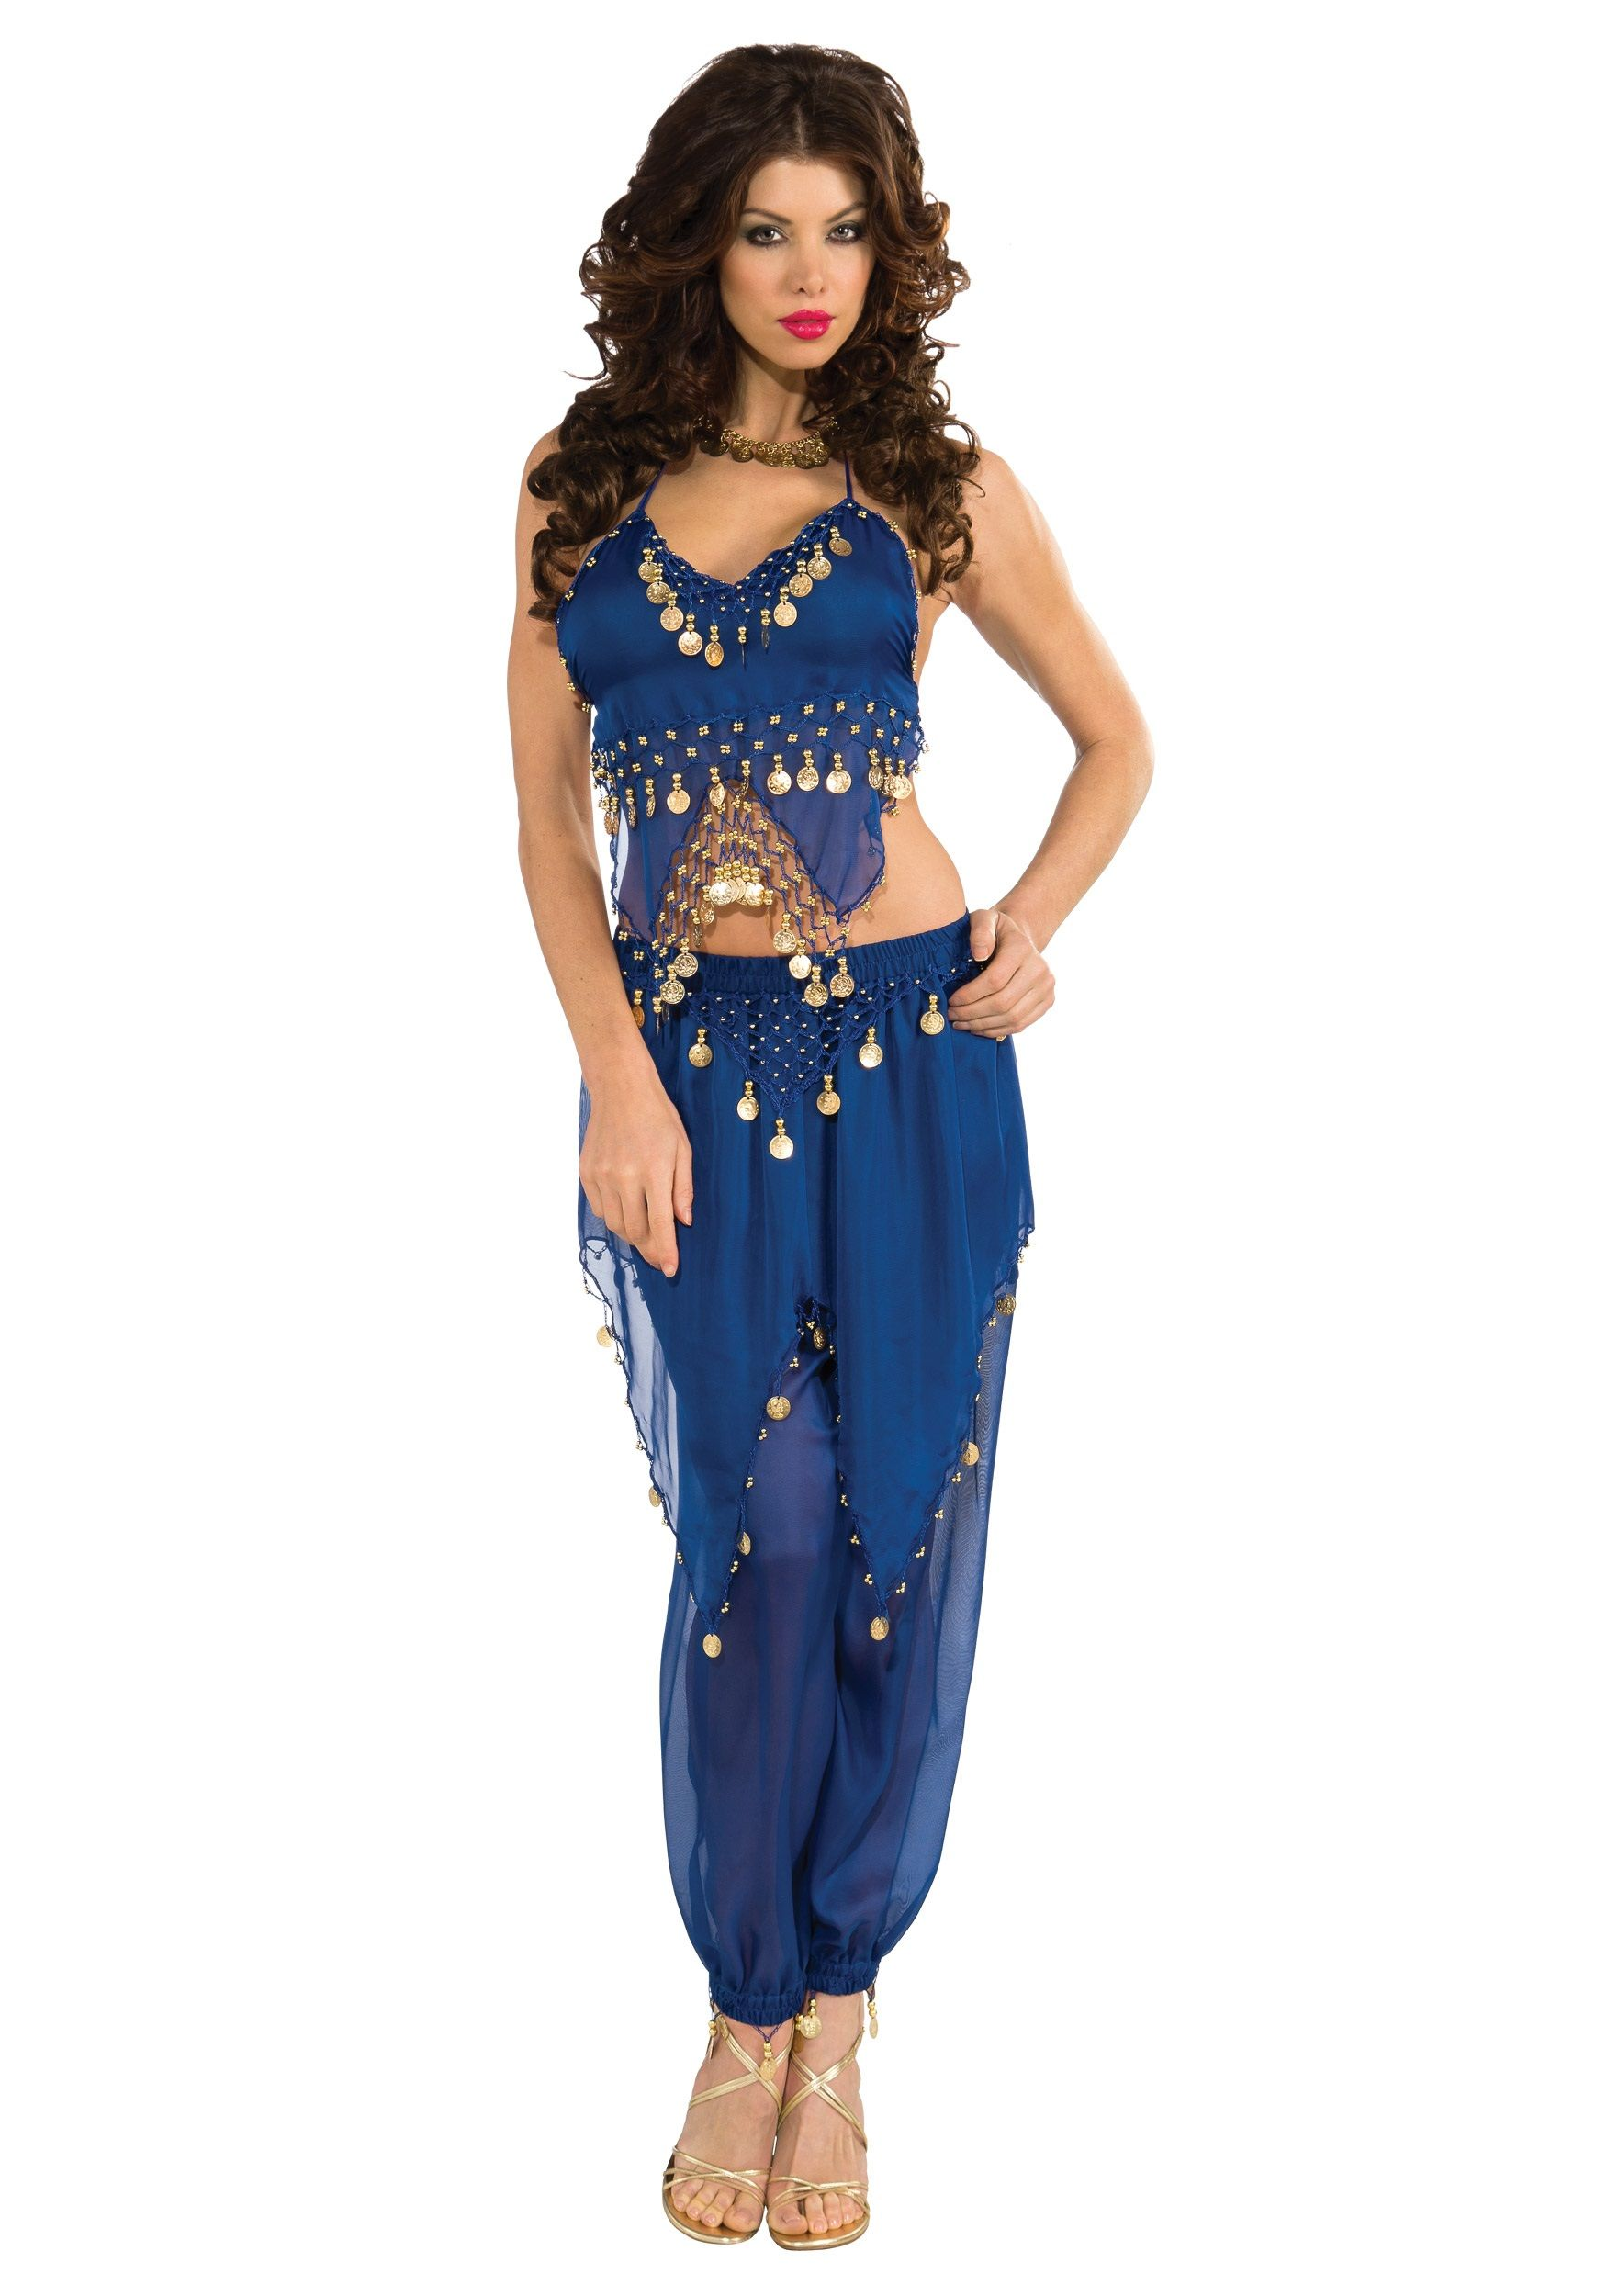 Blue Belly Dancer Costume | Belly dancer costumes, Belly dancers ...